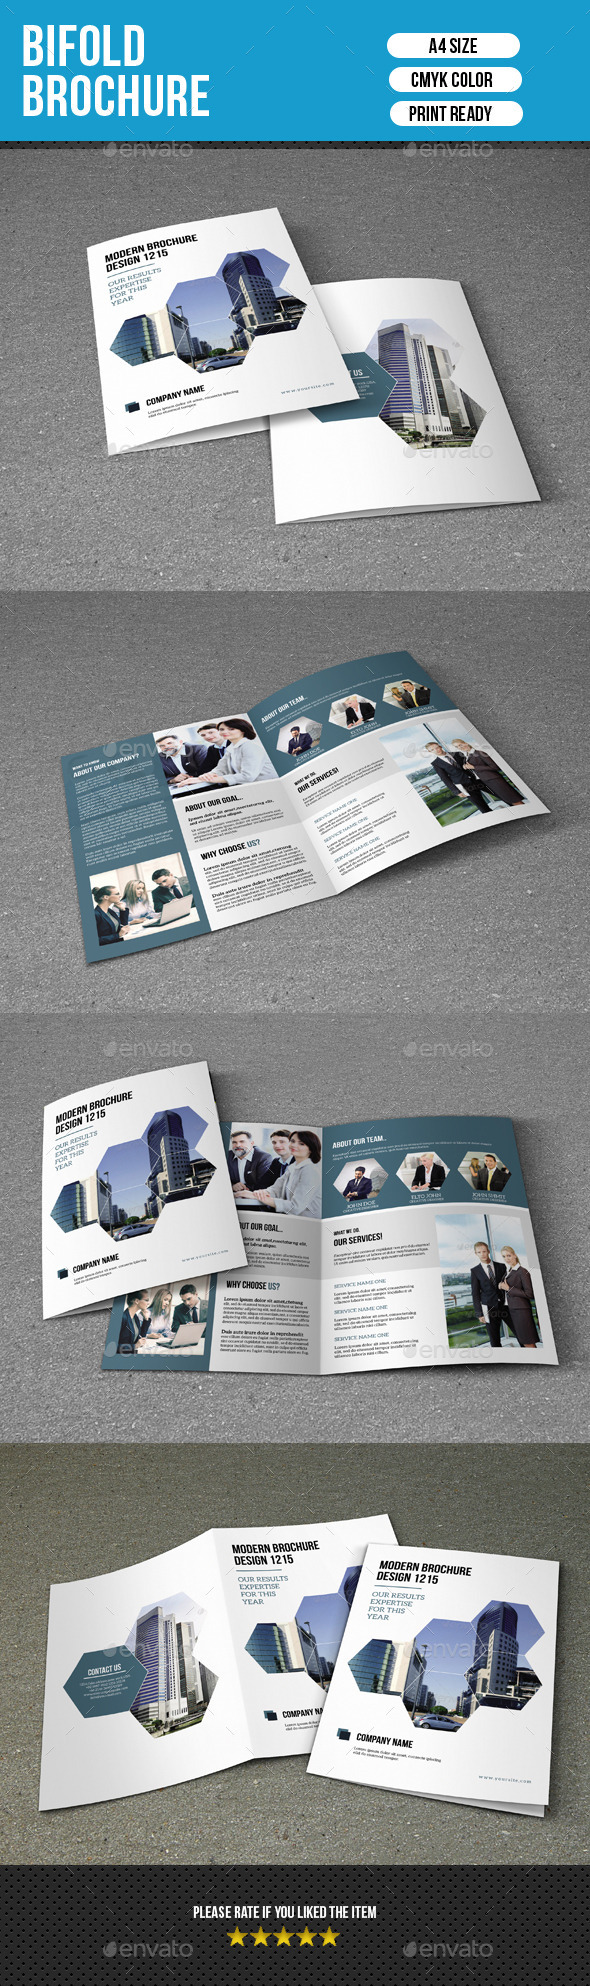 Bifold Brochure for Business-V161